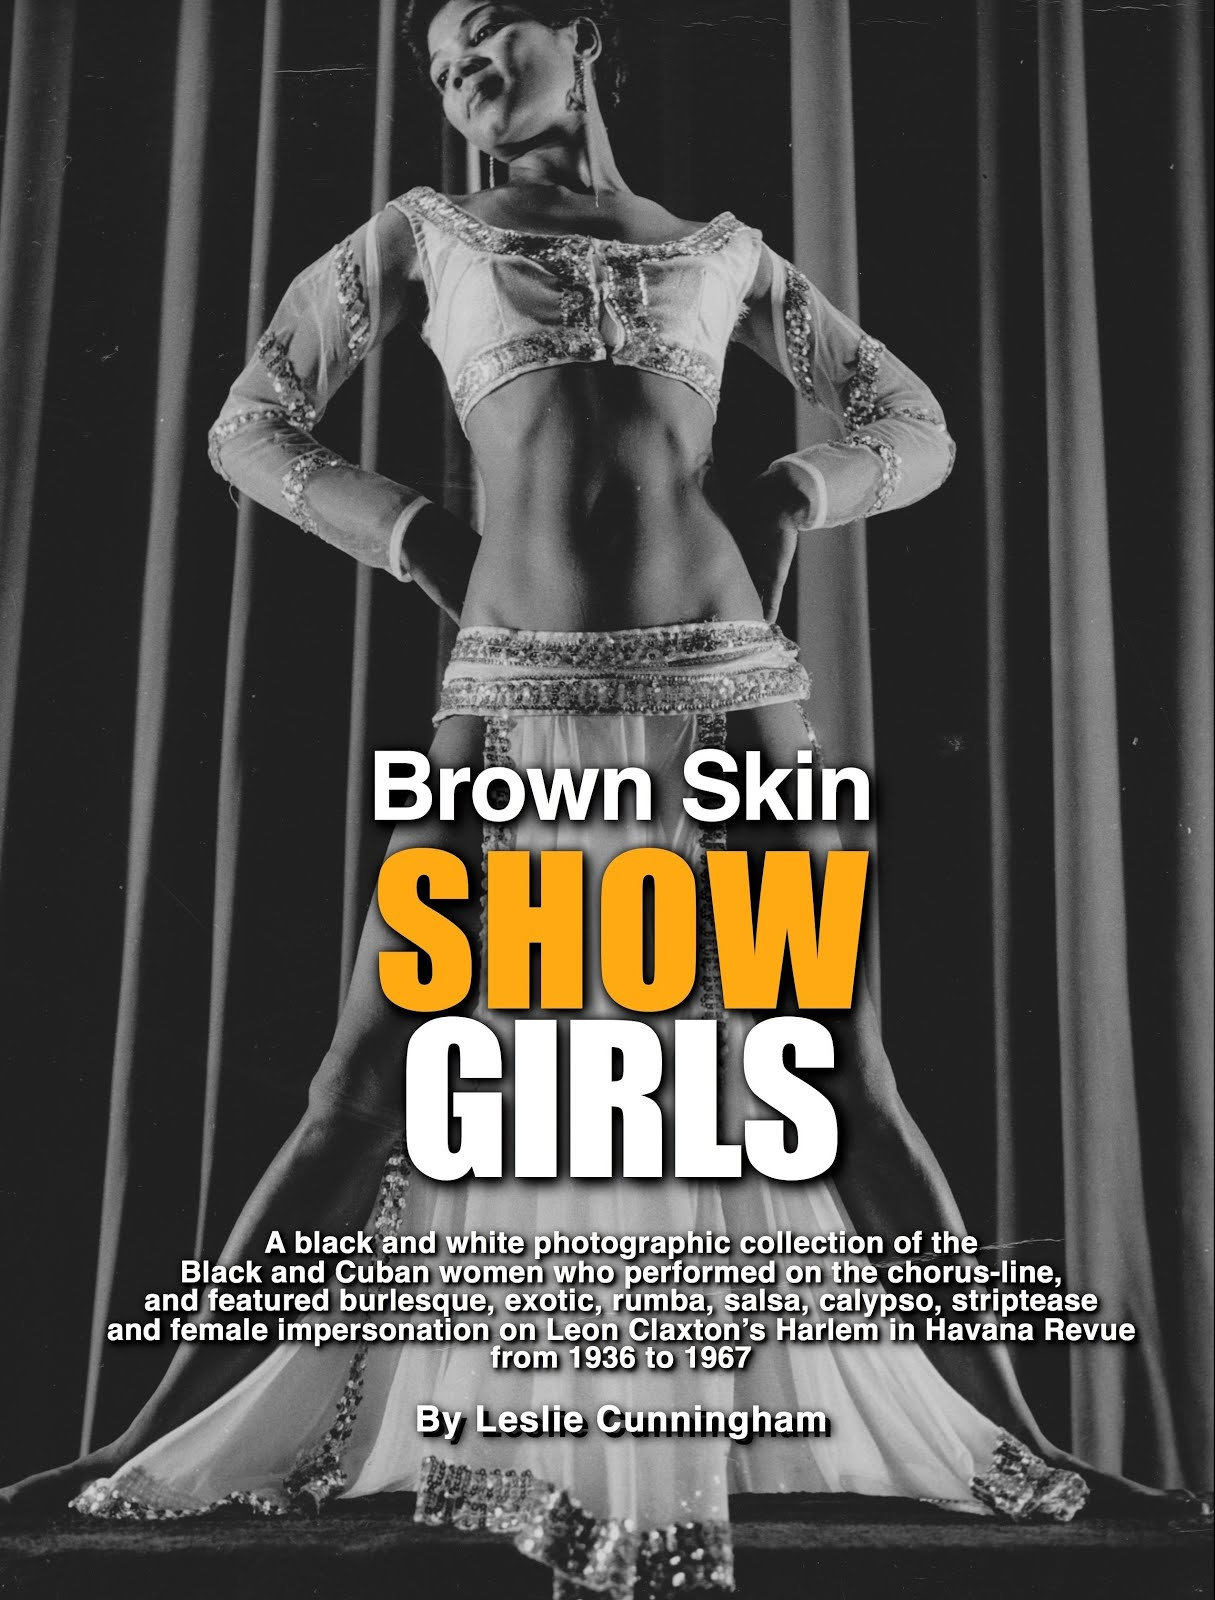 Order the Brown Skin Showgirls Book